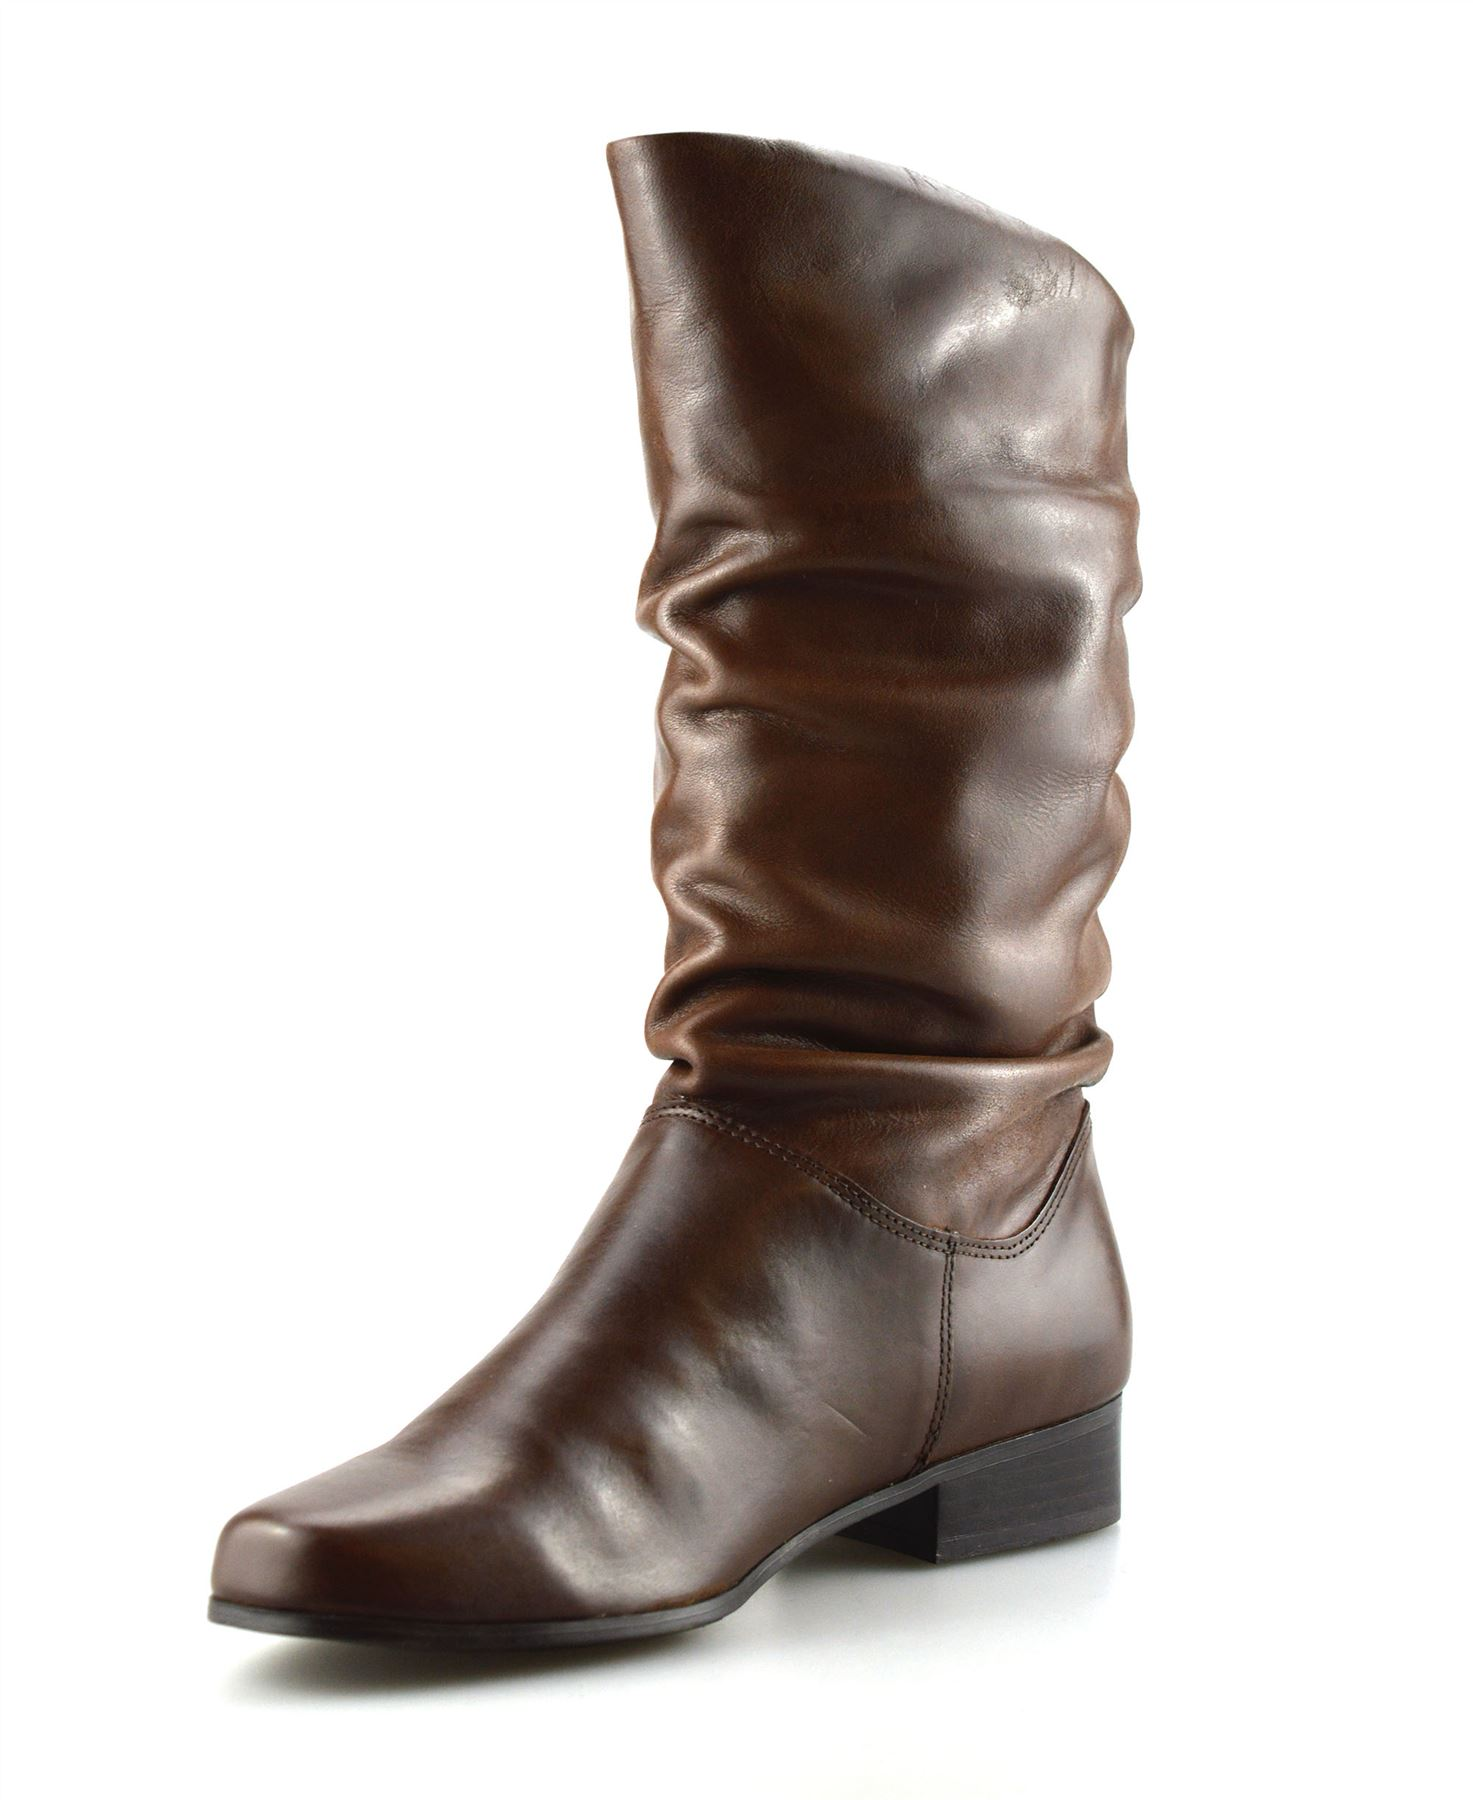 4158fe2928e97 Ladies Womens New Leather Mid Calf Low Flat Heel Slouch Riding Boots ...